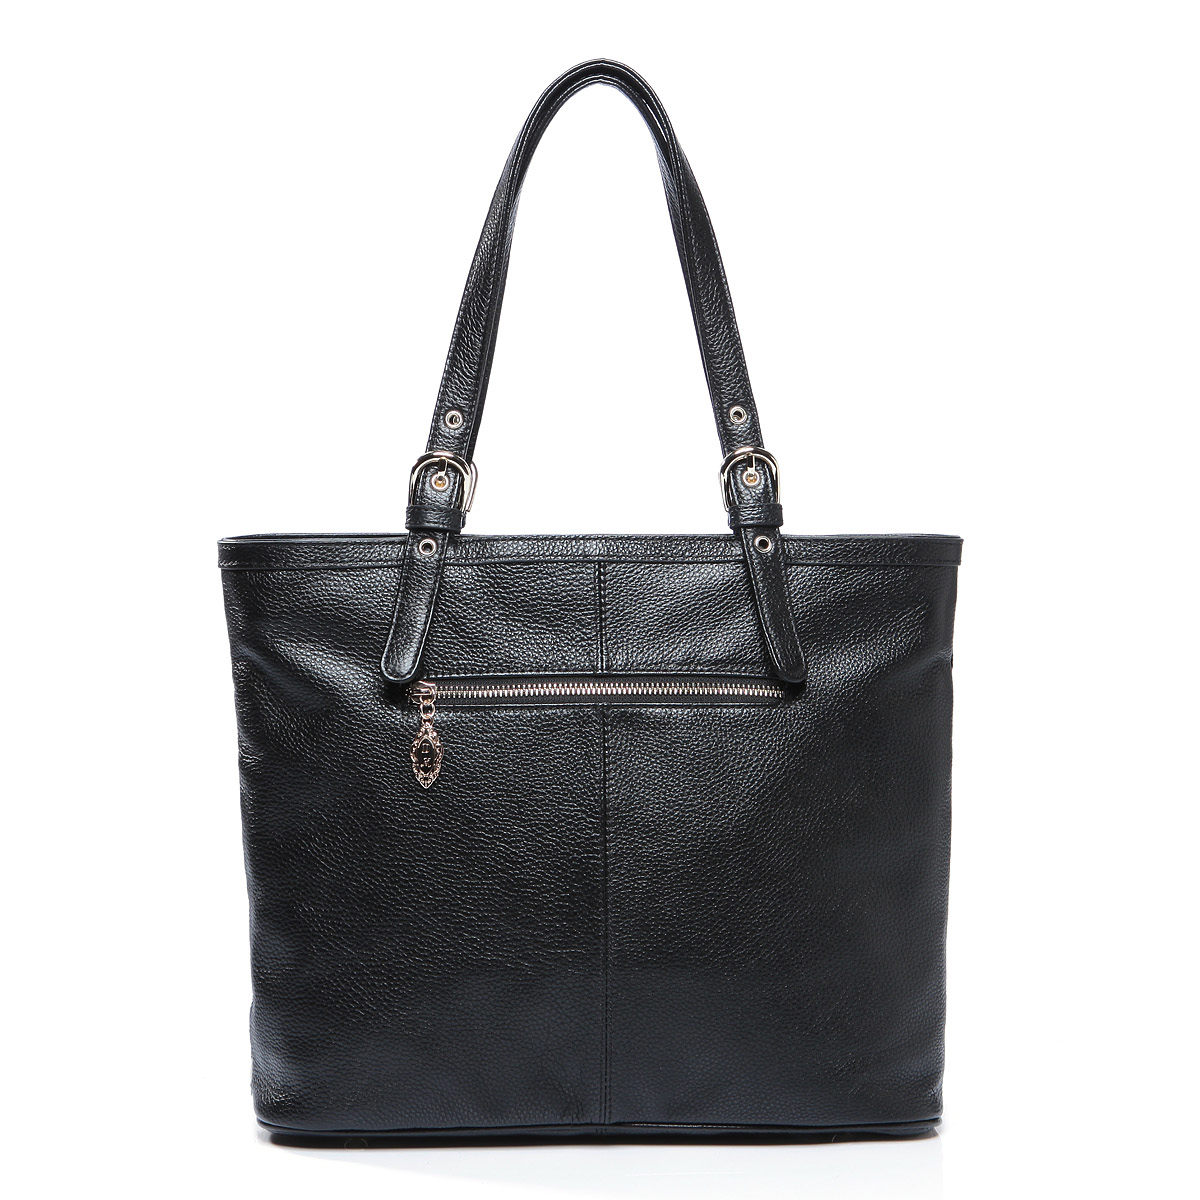 Find great deals on eBay for black leather tote handbag and black real leather tote handbag. Shop with confidence.